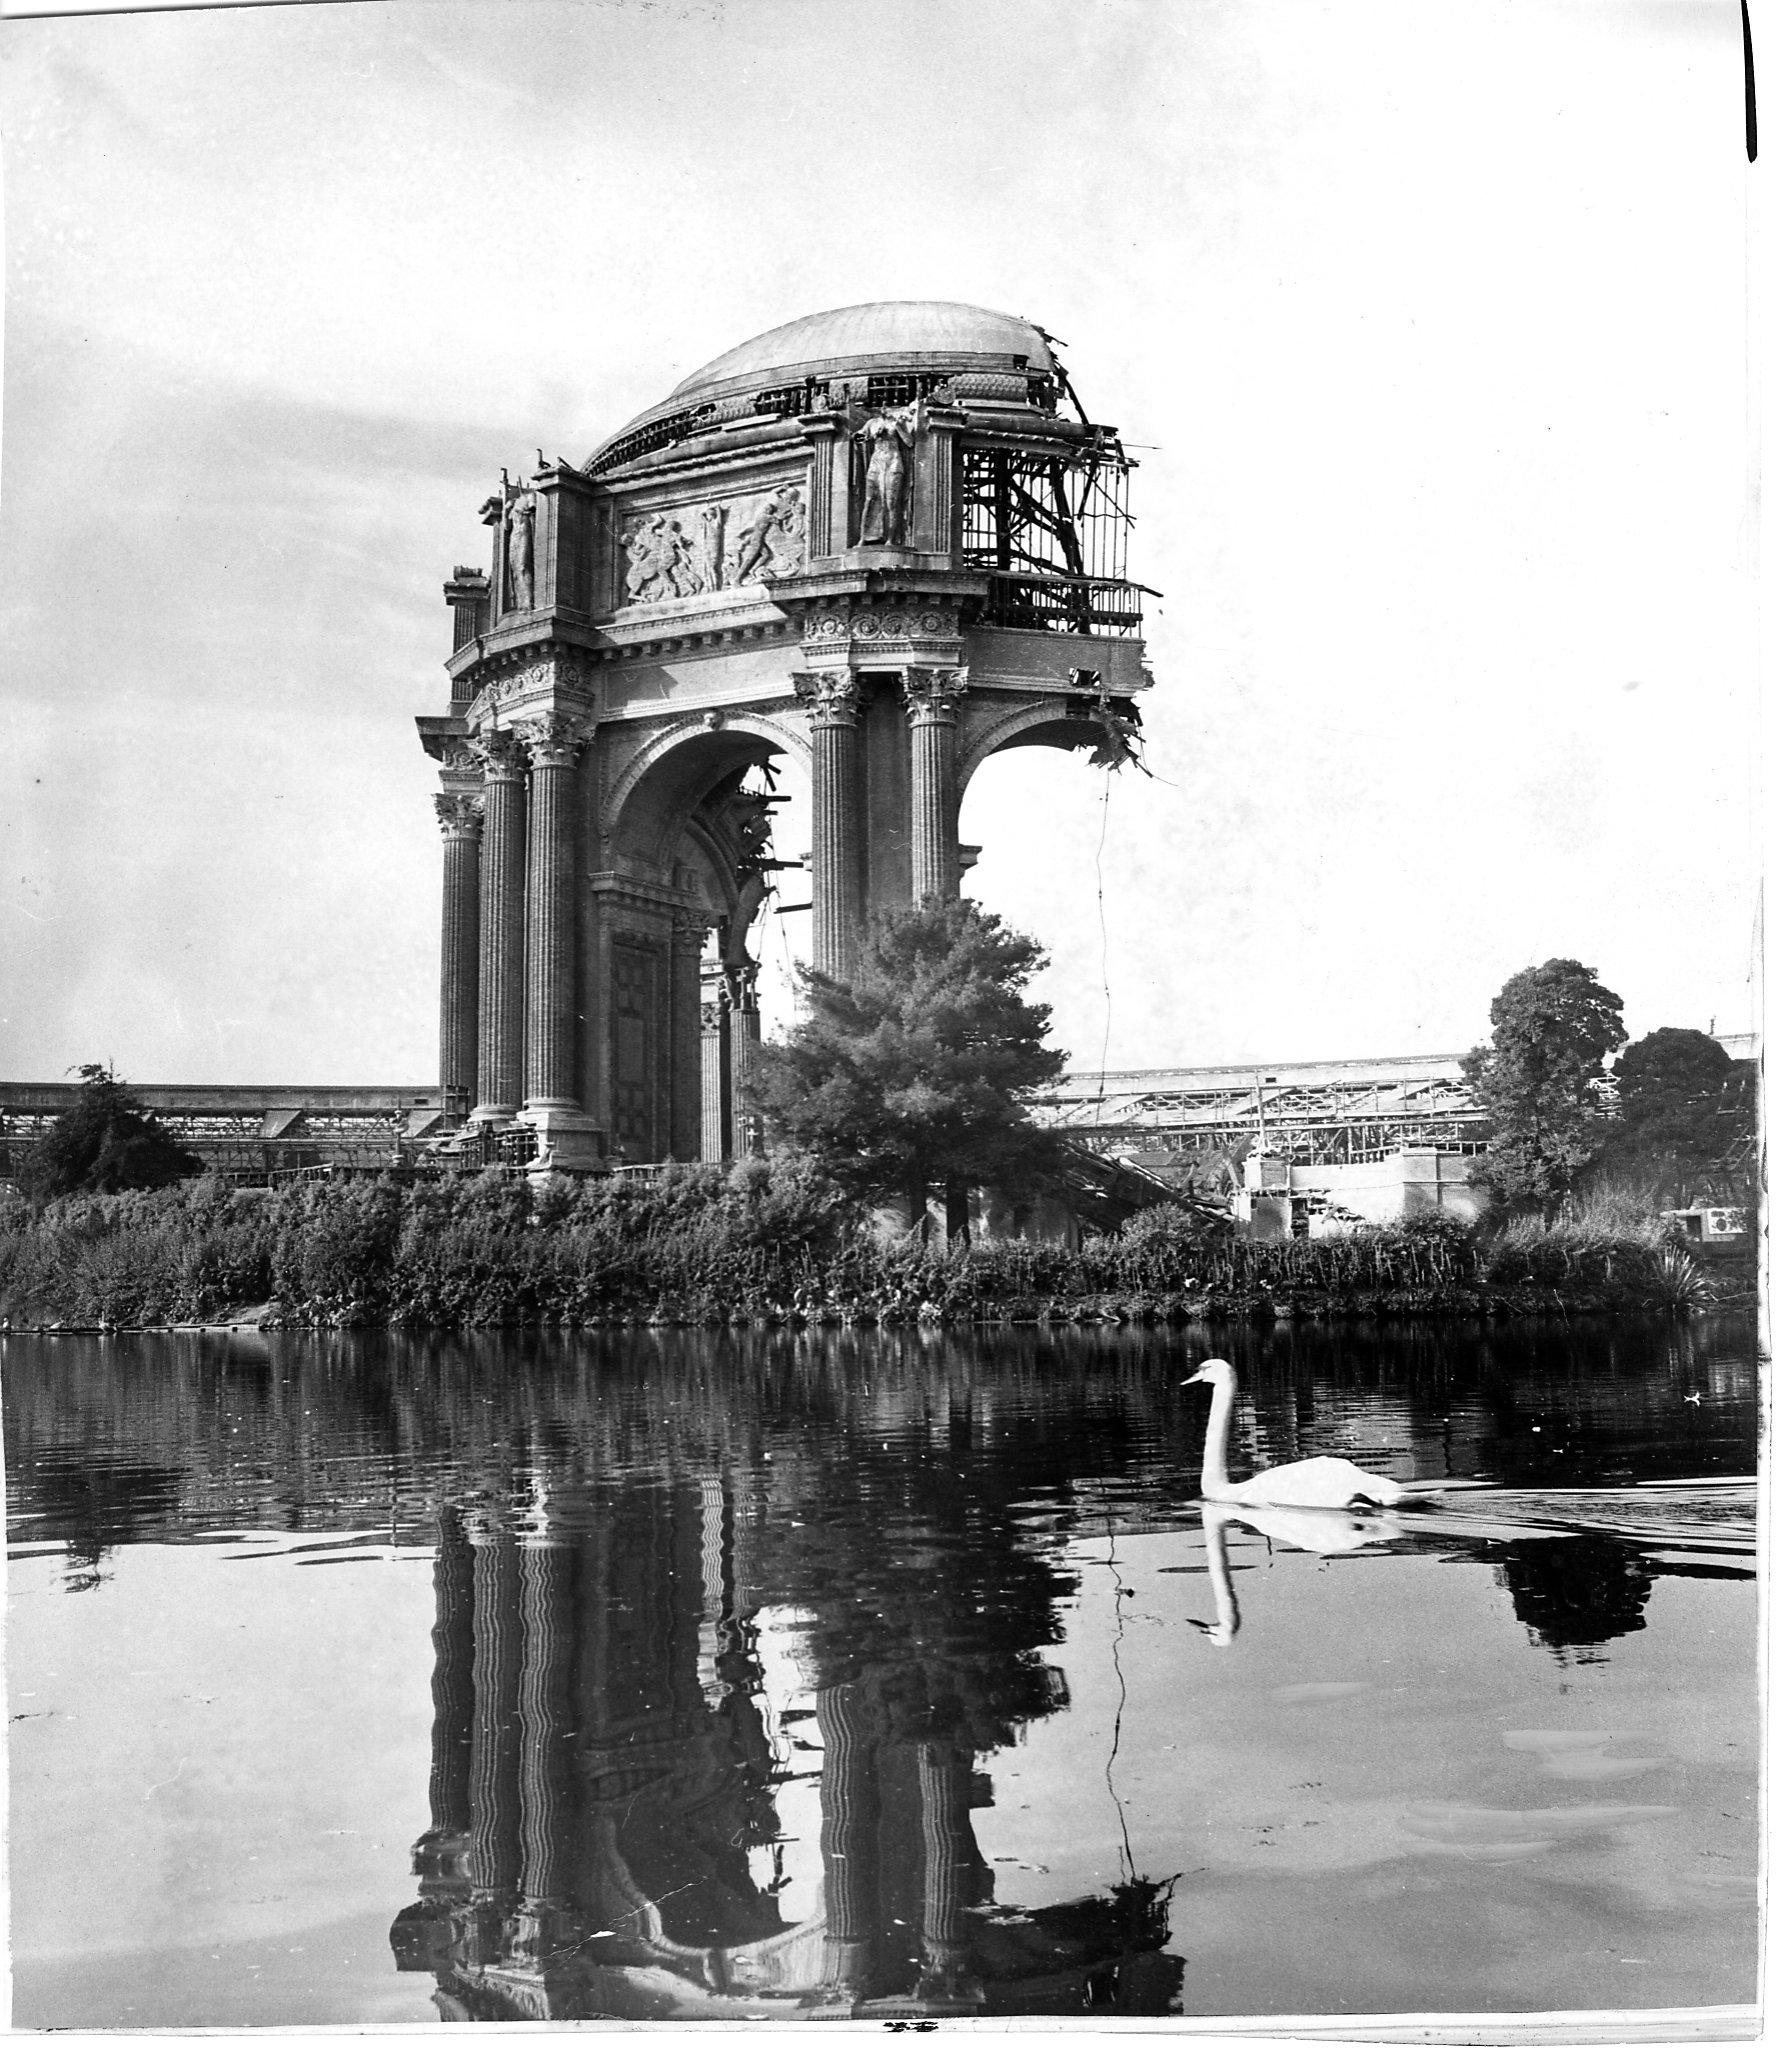 Sf Chronicle Classifieds: Save The Palace Of Fine Arts? In The 60s, SF Wasn't So